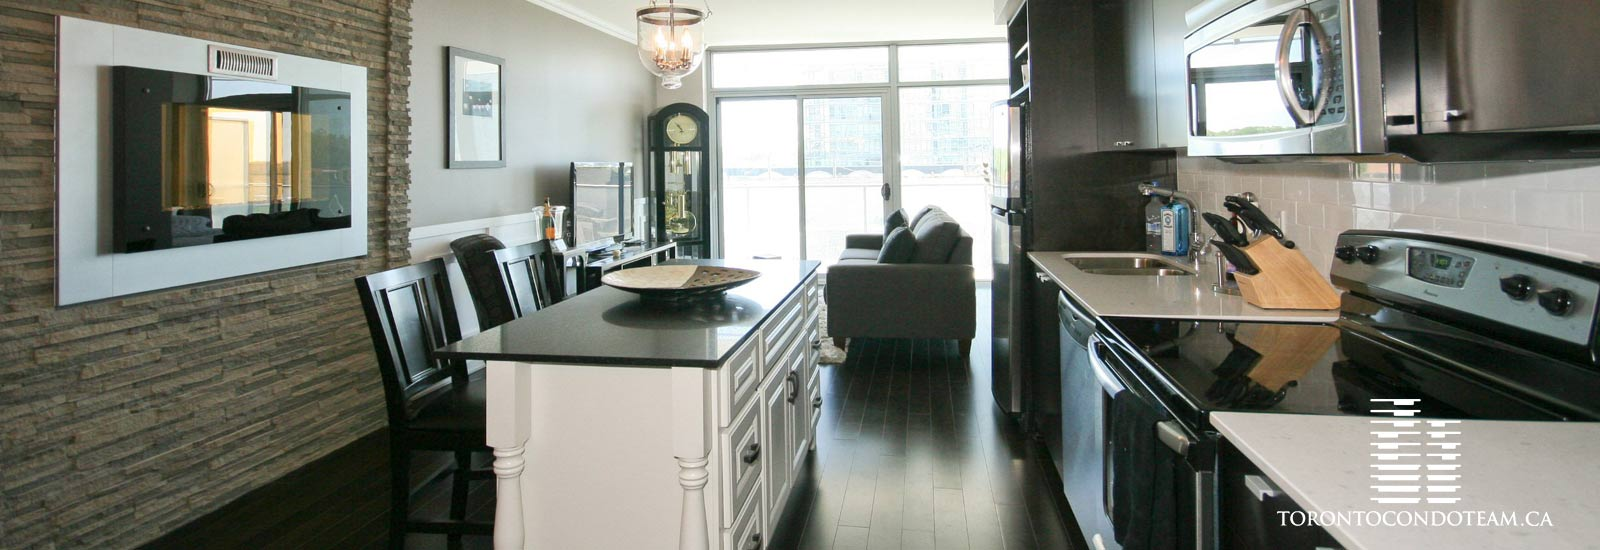 103-105 The Queensway Condos For Sale